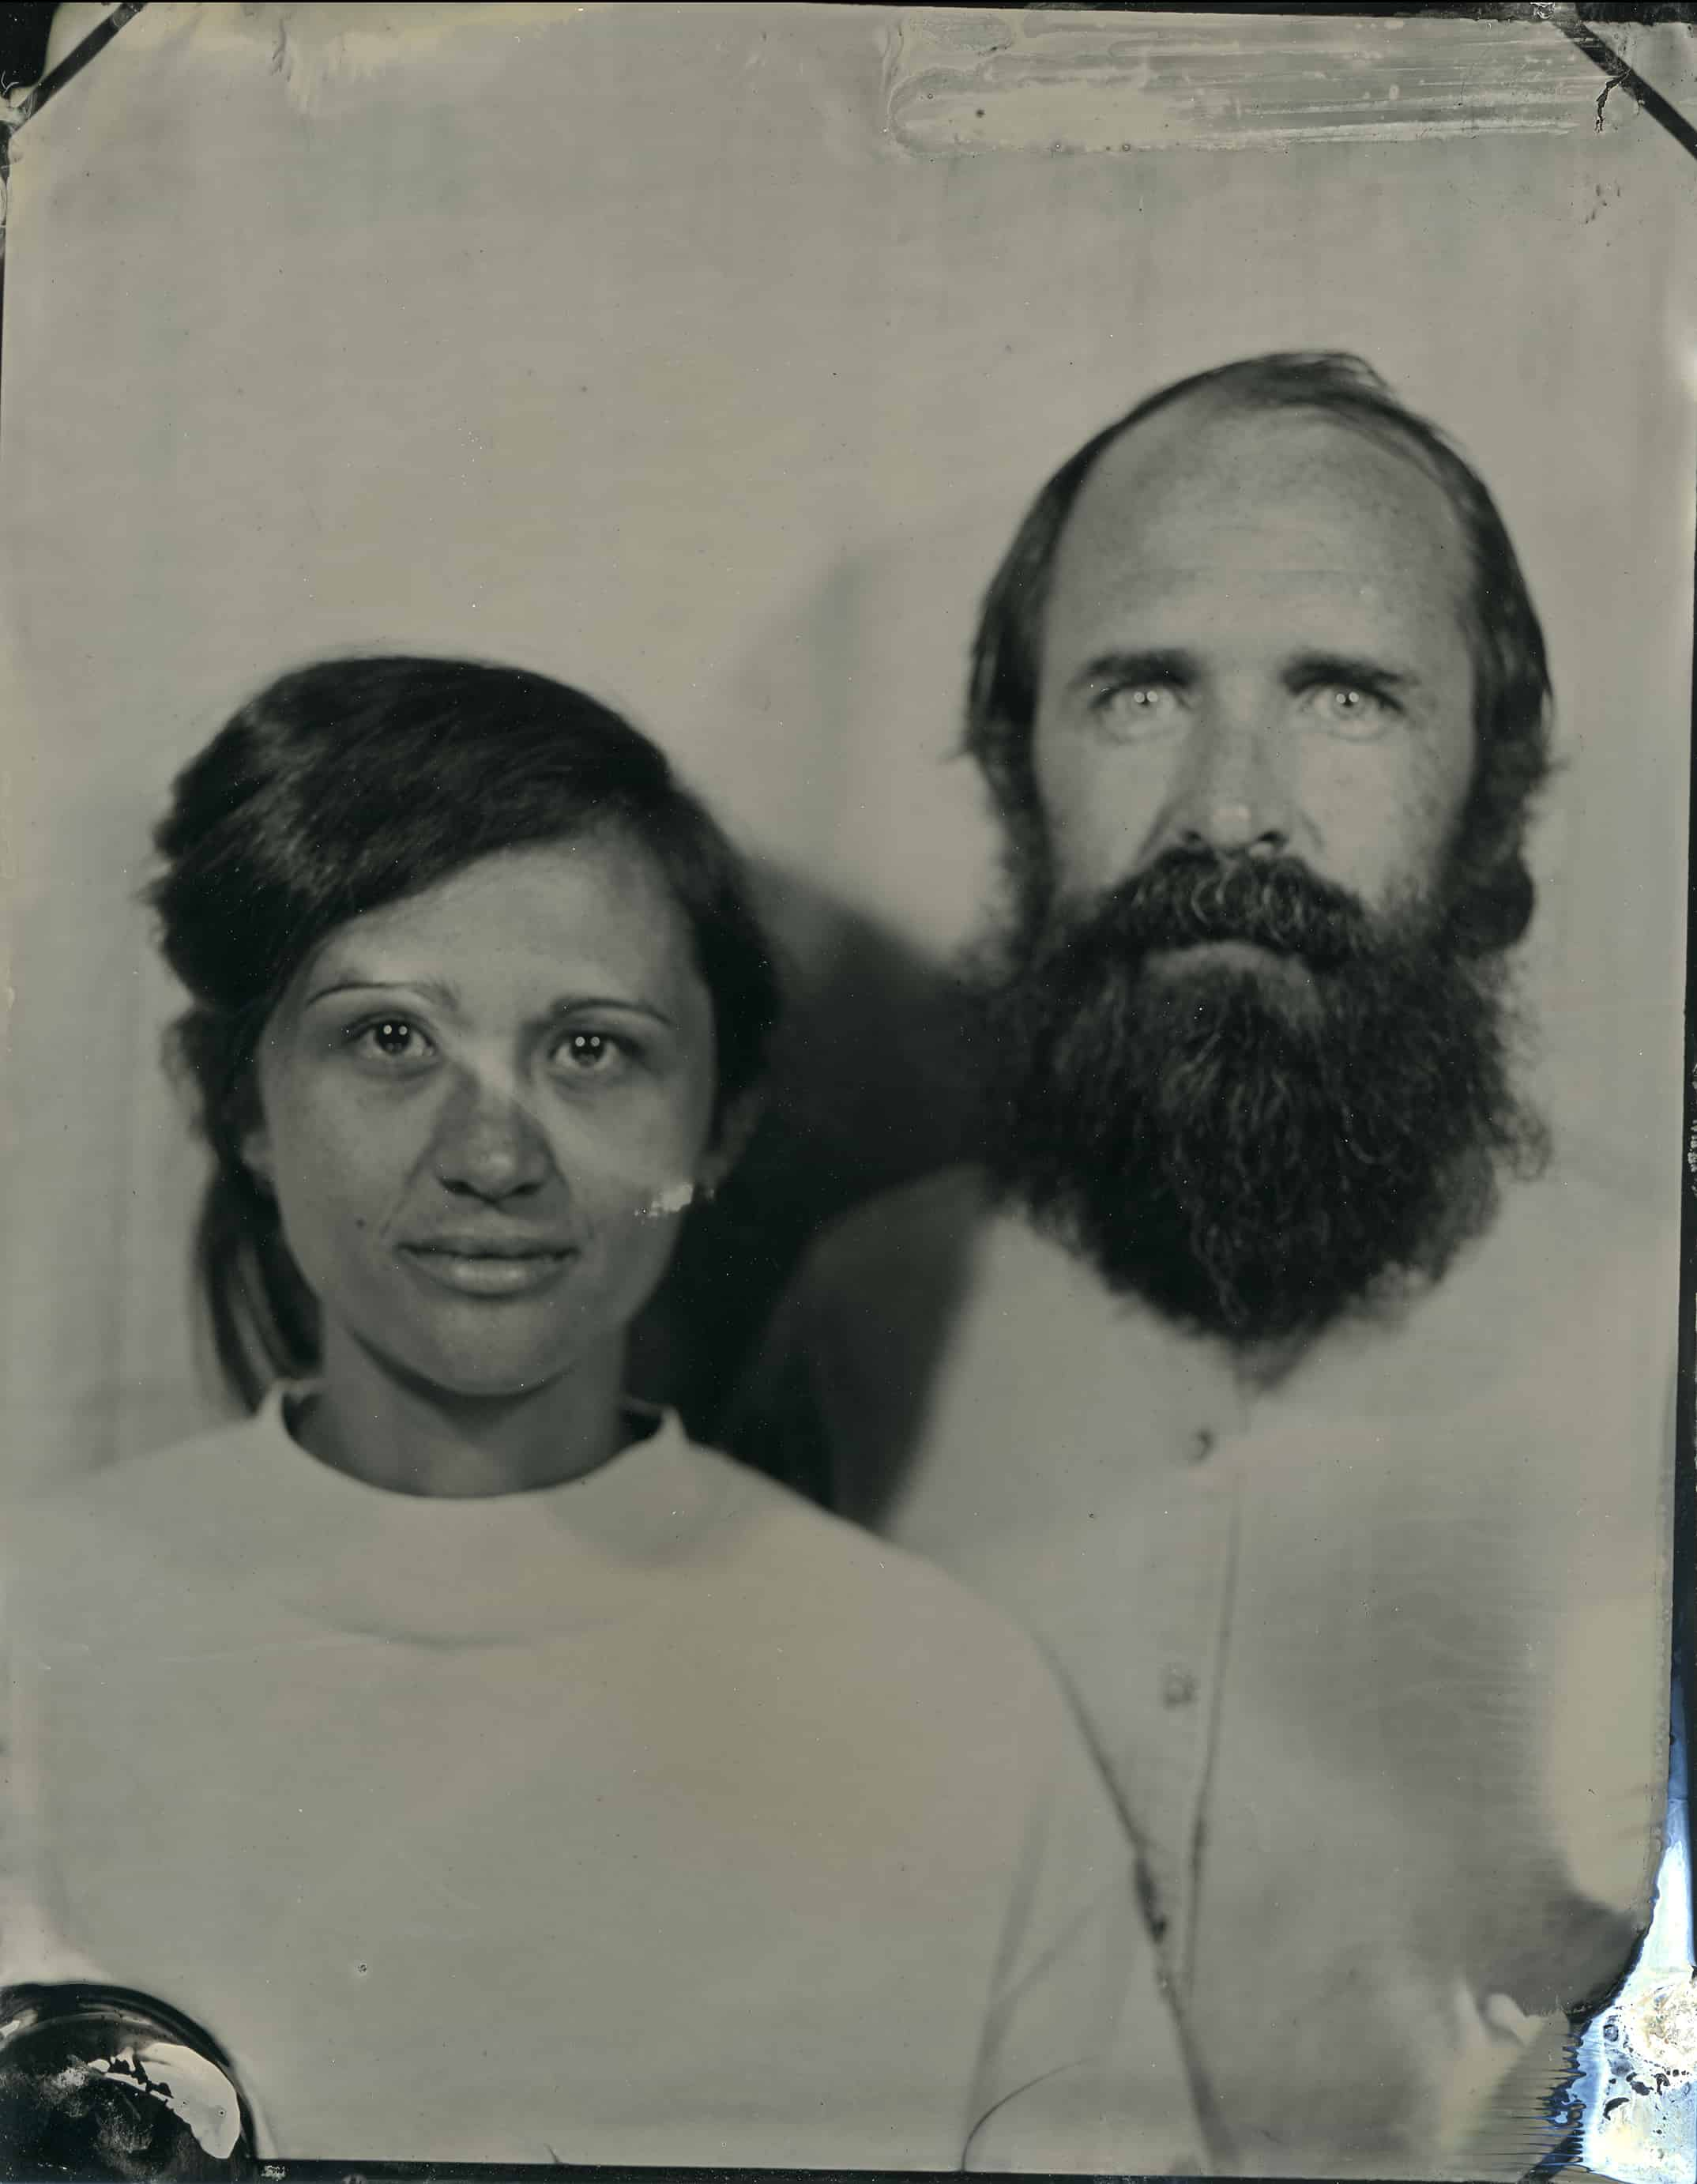 Tintype Portrait created in Athens, Georgia by Kate Lamb of Wild in Love Photo